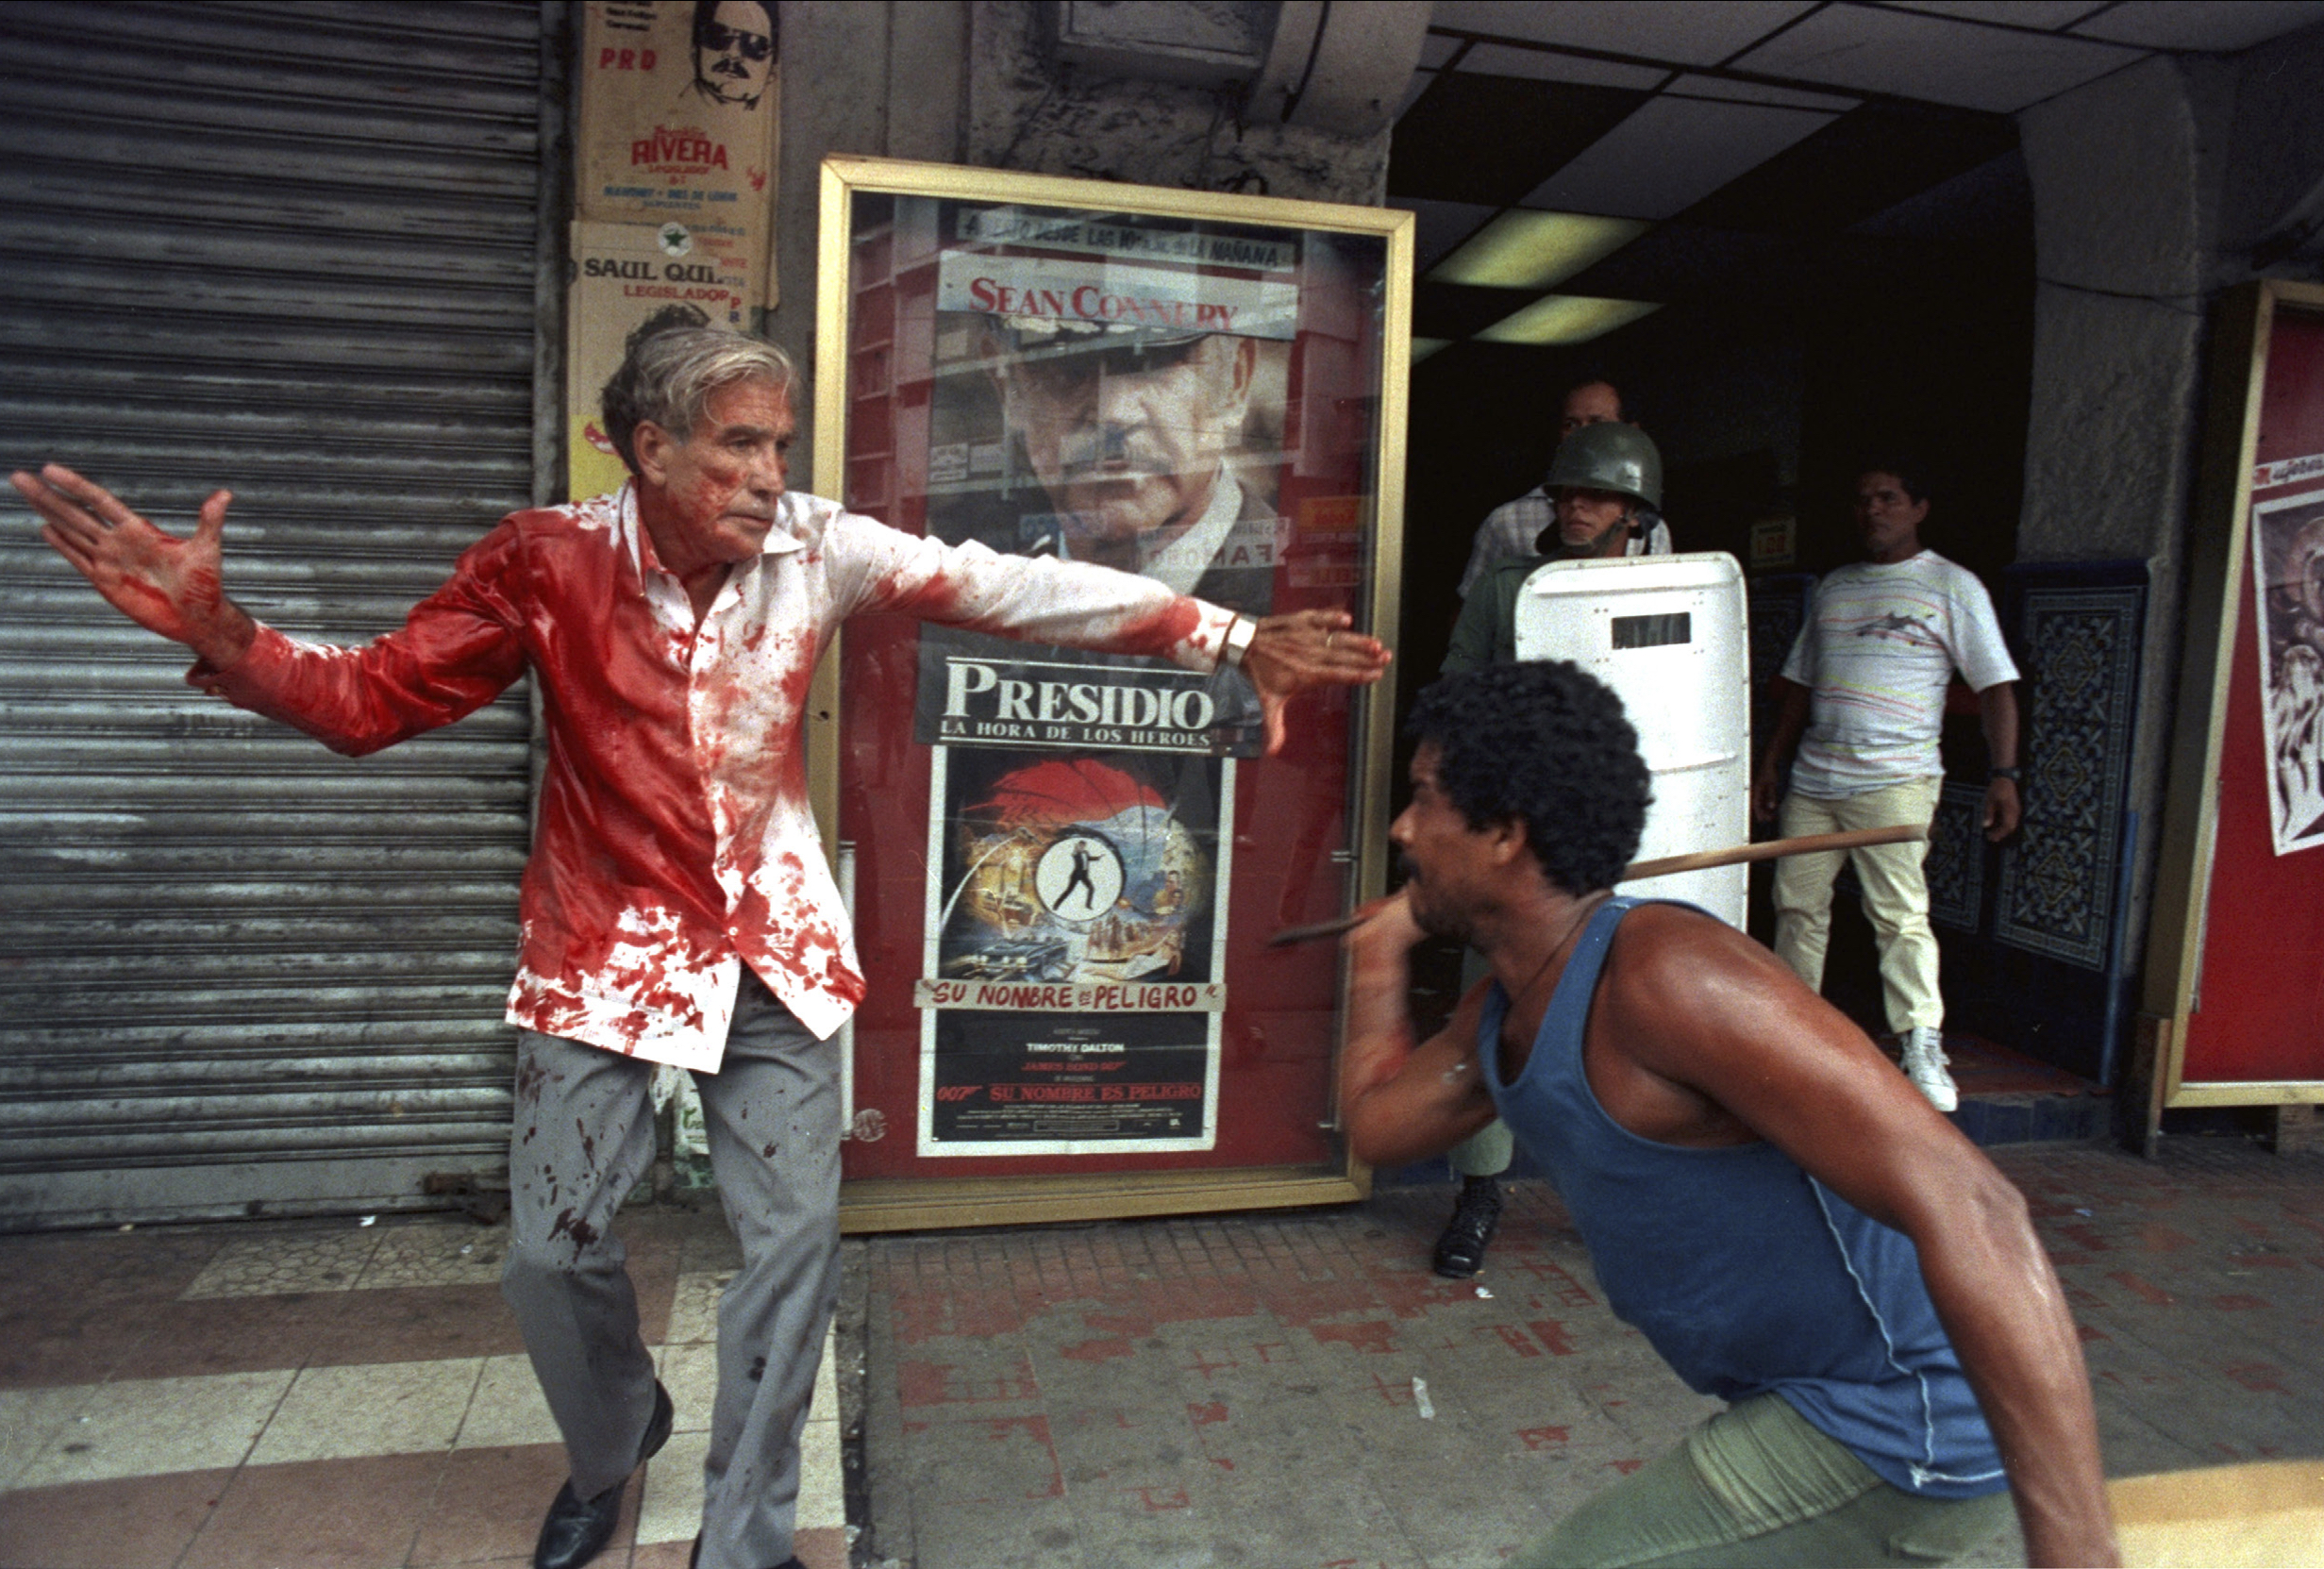 Ron Haviv.  Supporters of Panamanian dictator Manuel Noriega attack elected Vice President Guillermo (Billy) Ford in Panama City. The image was stated by US President Bush as one of the reasons for the invasion of Panama.  1989.